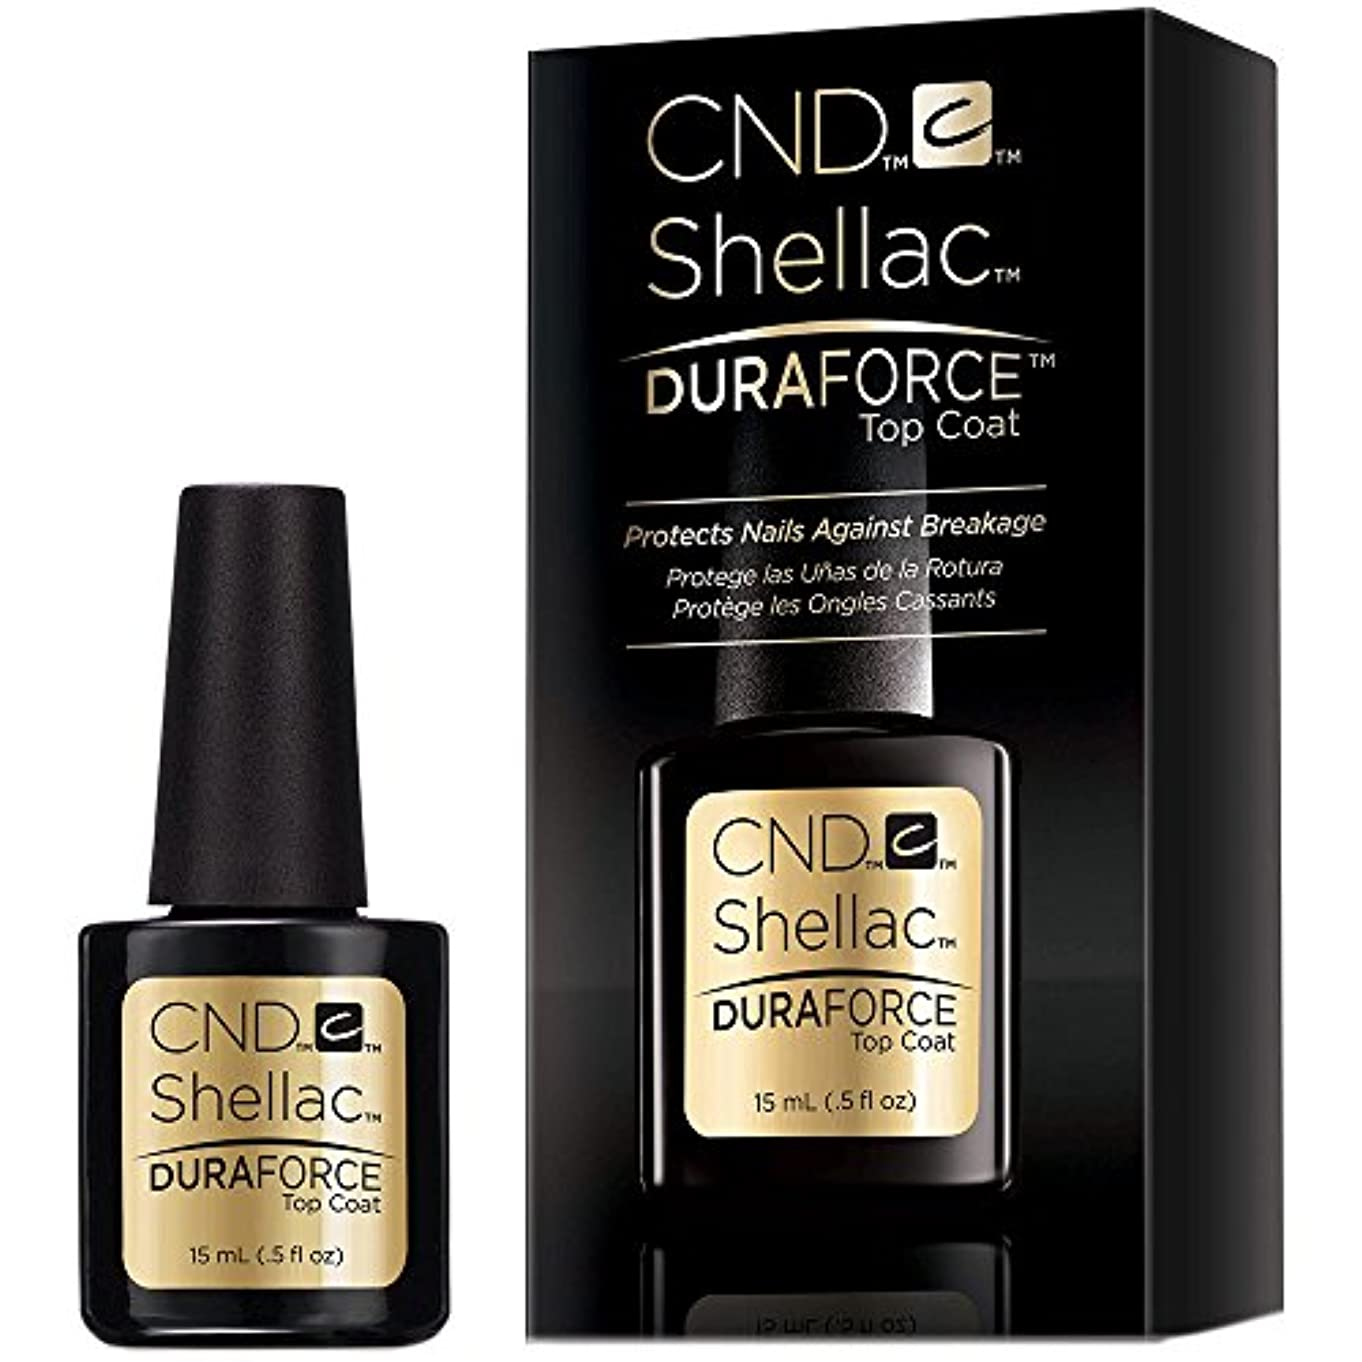 不毛のパーフェルビッド好むCND Shellac Gel Polish - Duraforce Top Coat - 0.5oz / 15ml